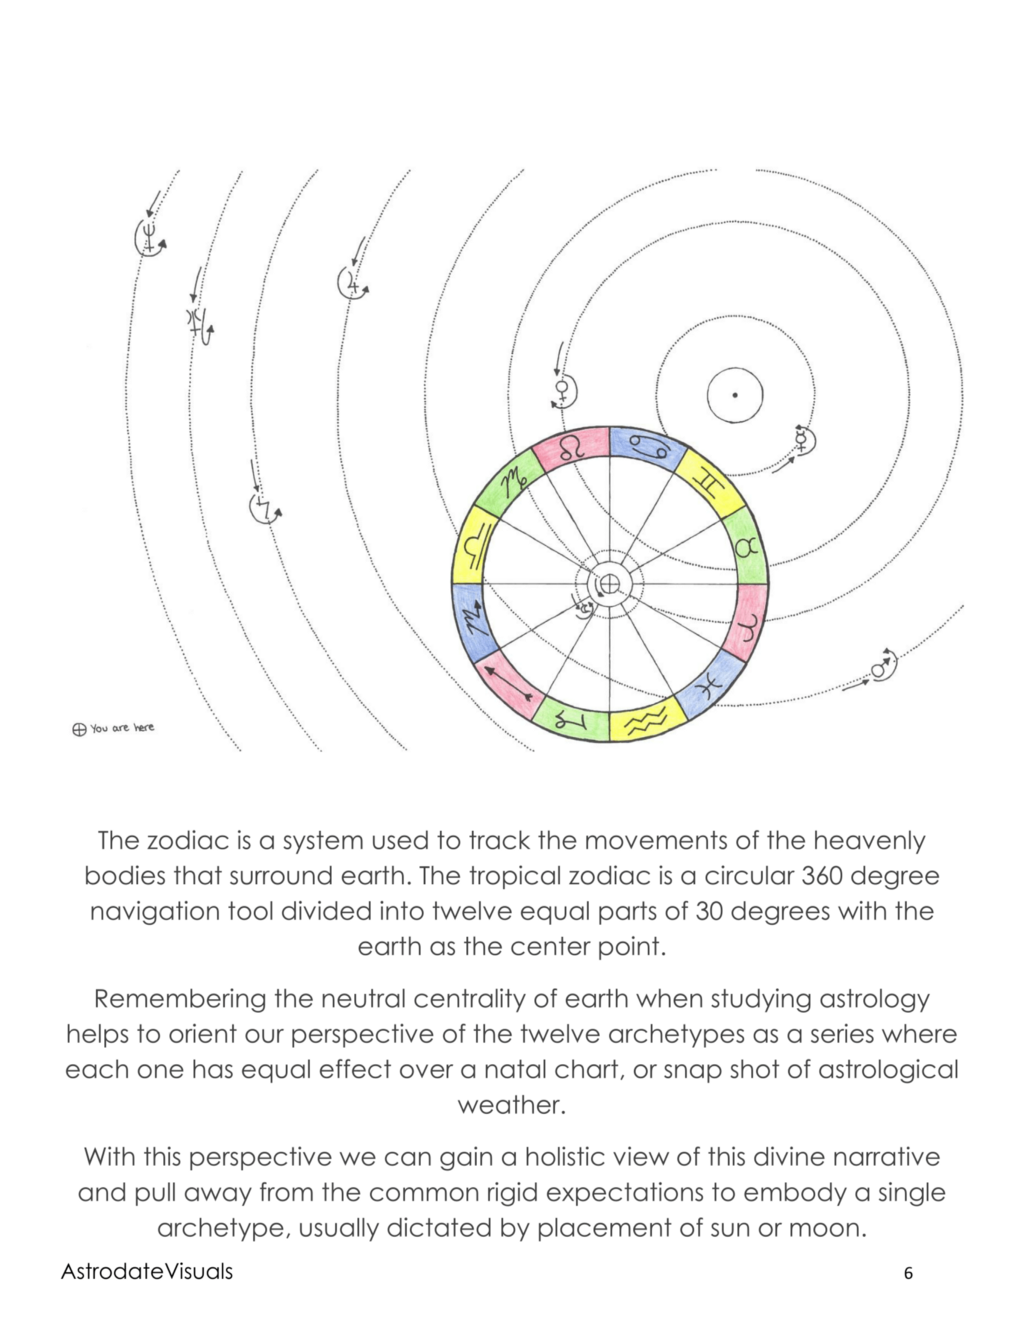 Visual guide to astrology copy paste programmers queer astrology for visual learners download the visual guide to astrology ebook as a pdf or epub file for free contribute to the project at geenschuldenfo Image collections